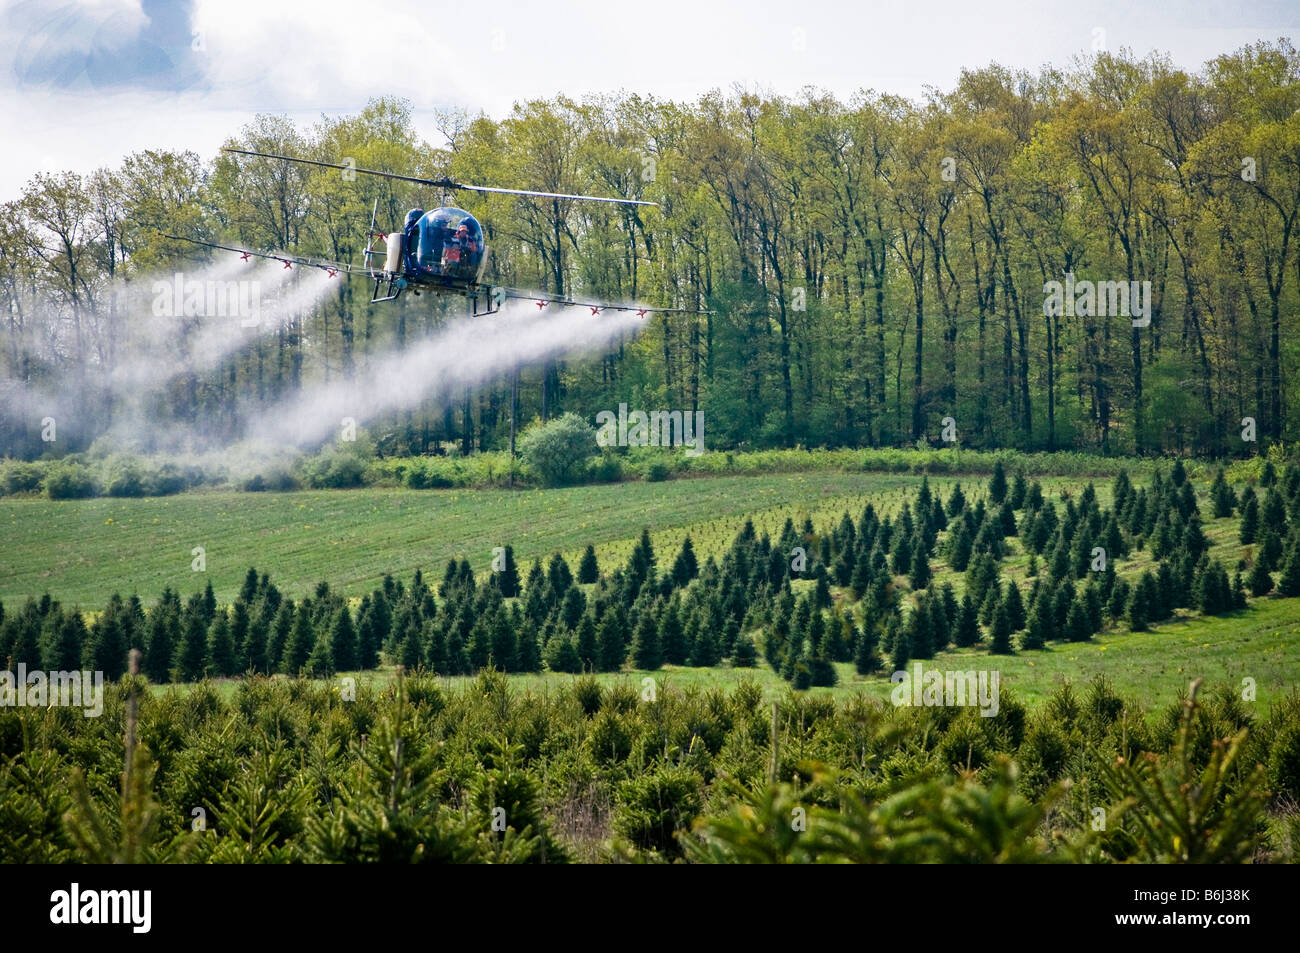 Low flying helicopter sprays chemical pesticide over tree farm forest. - Stock Image